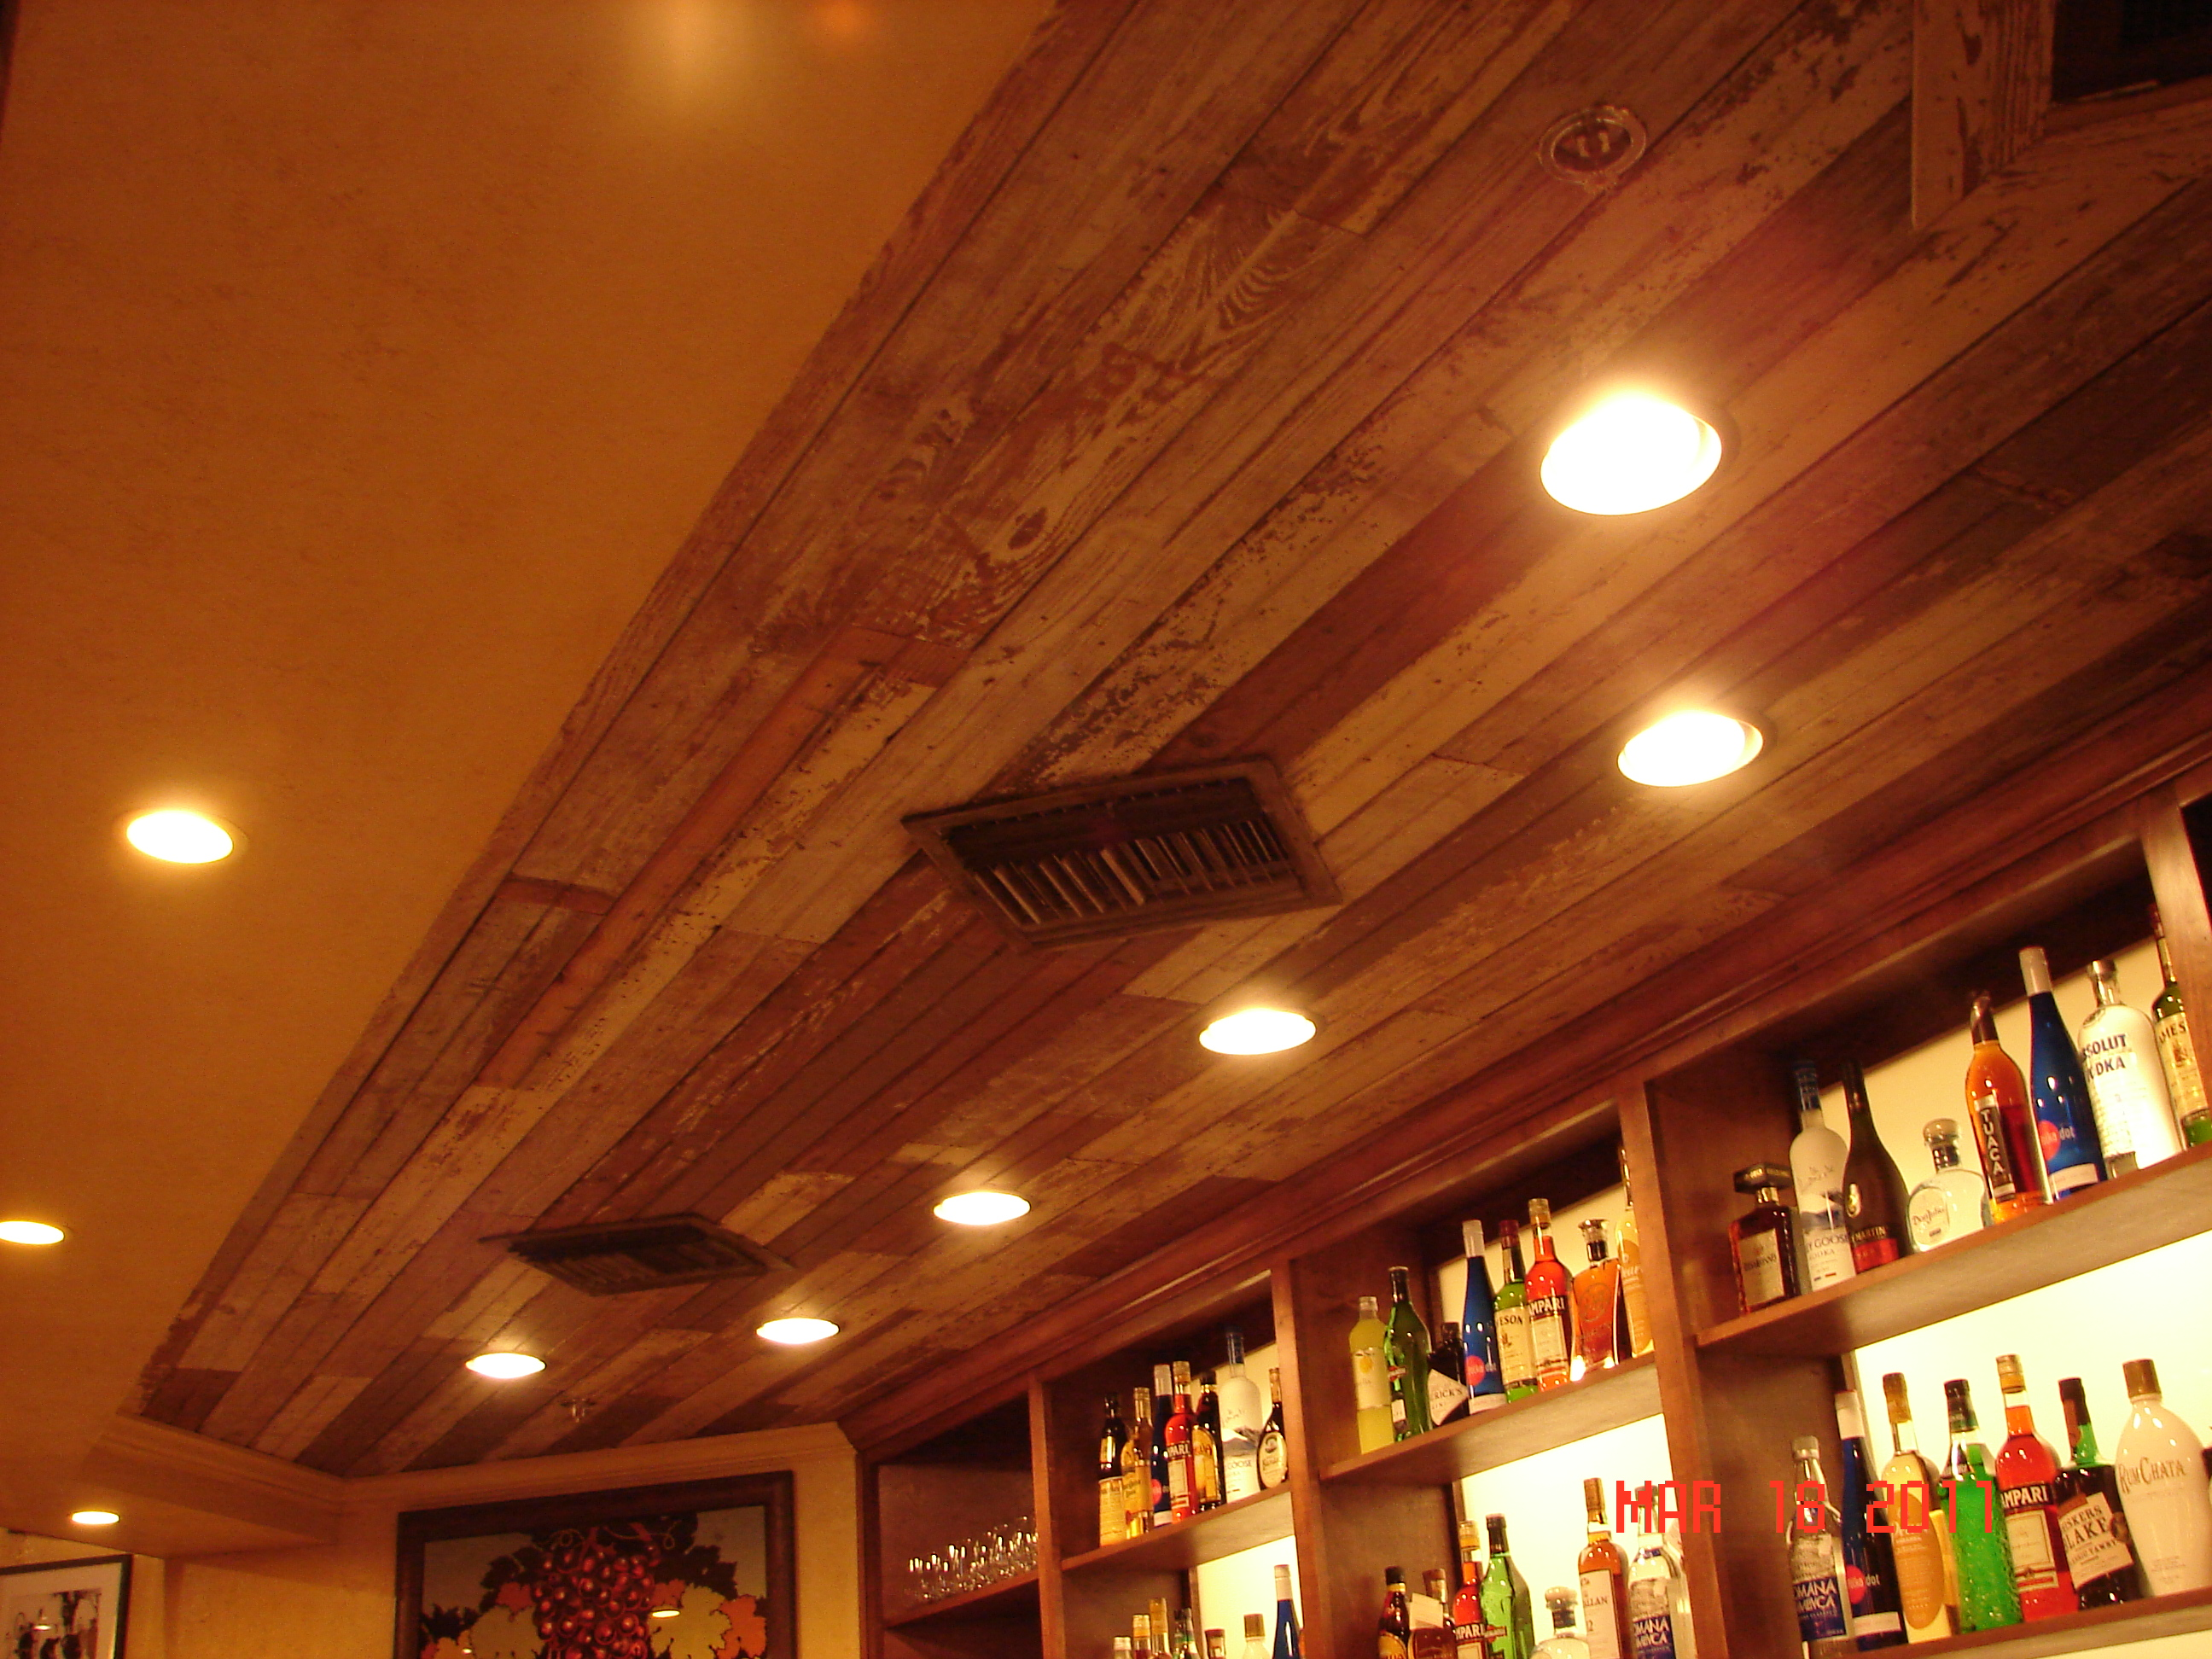 Tabella Restaurant Hattiesburg Distressed Ceiling Finishes